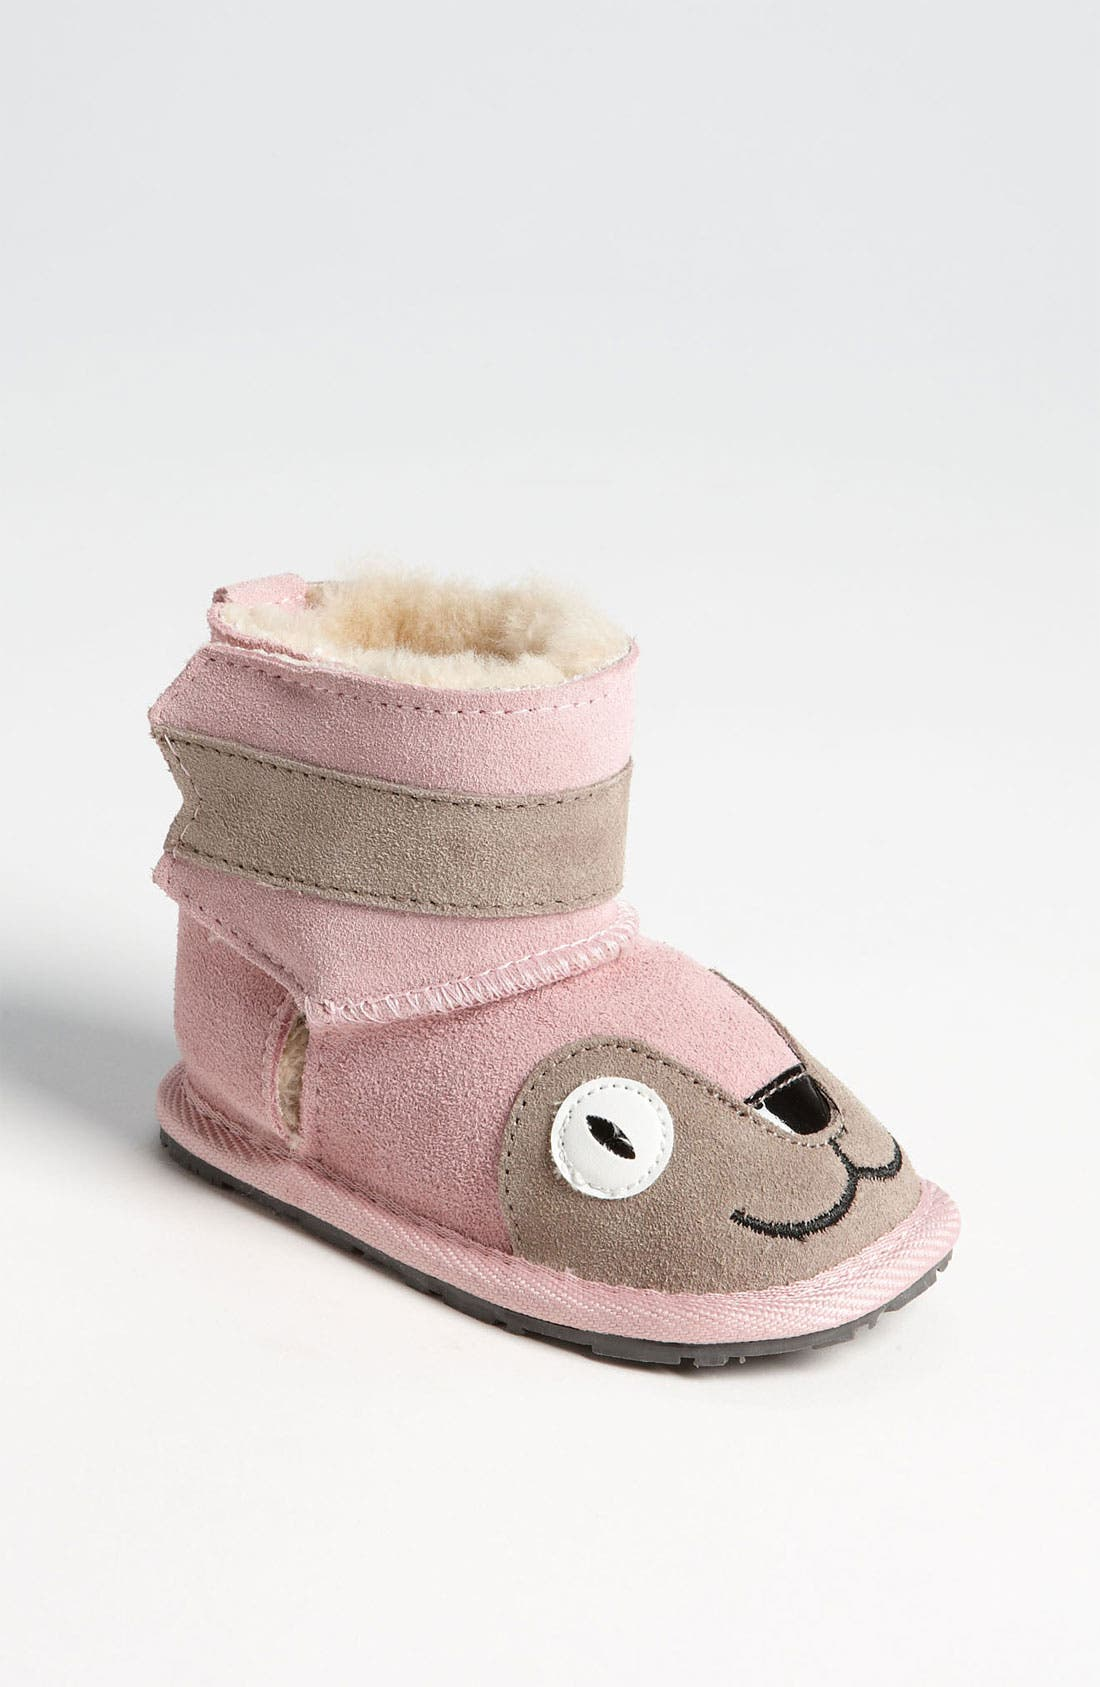 Alternate Image 1 Selected - EMU Australia 'Little Creatures - Kitty' Boot (Baby & Walker)